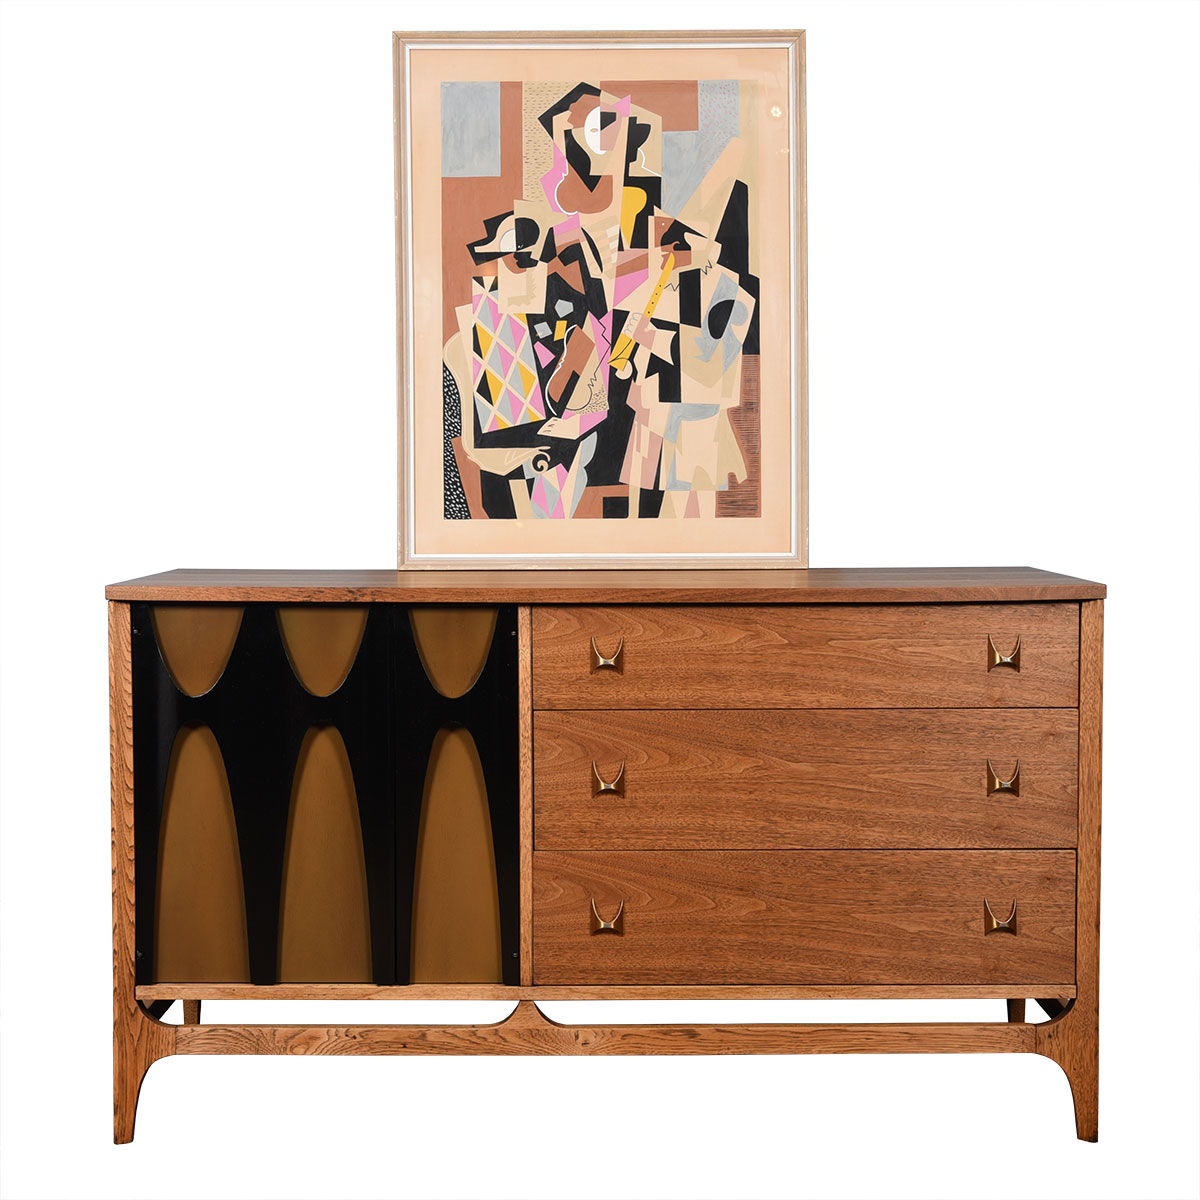 Cubist Mid-century Painting in the Style of Picasso